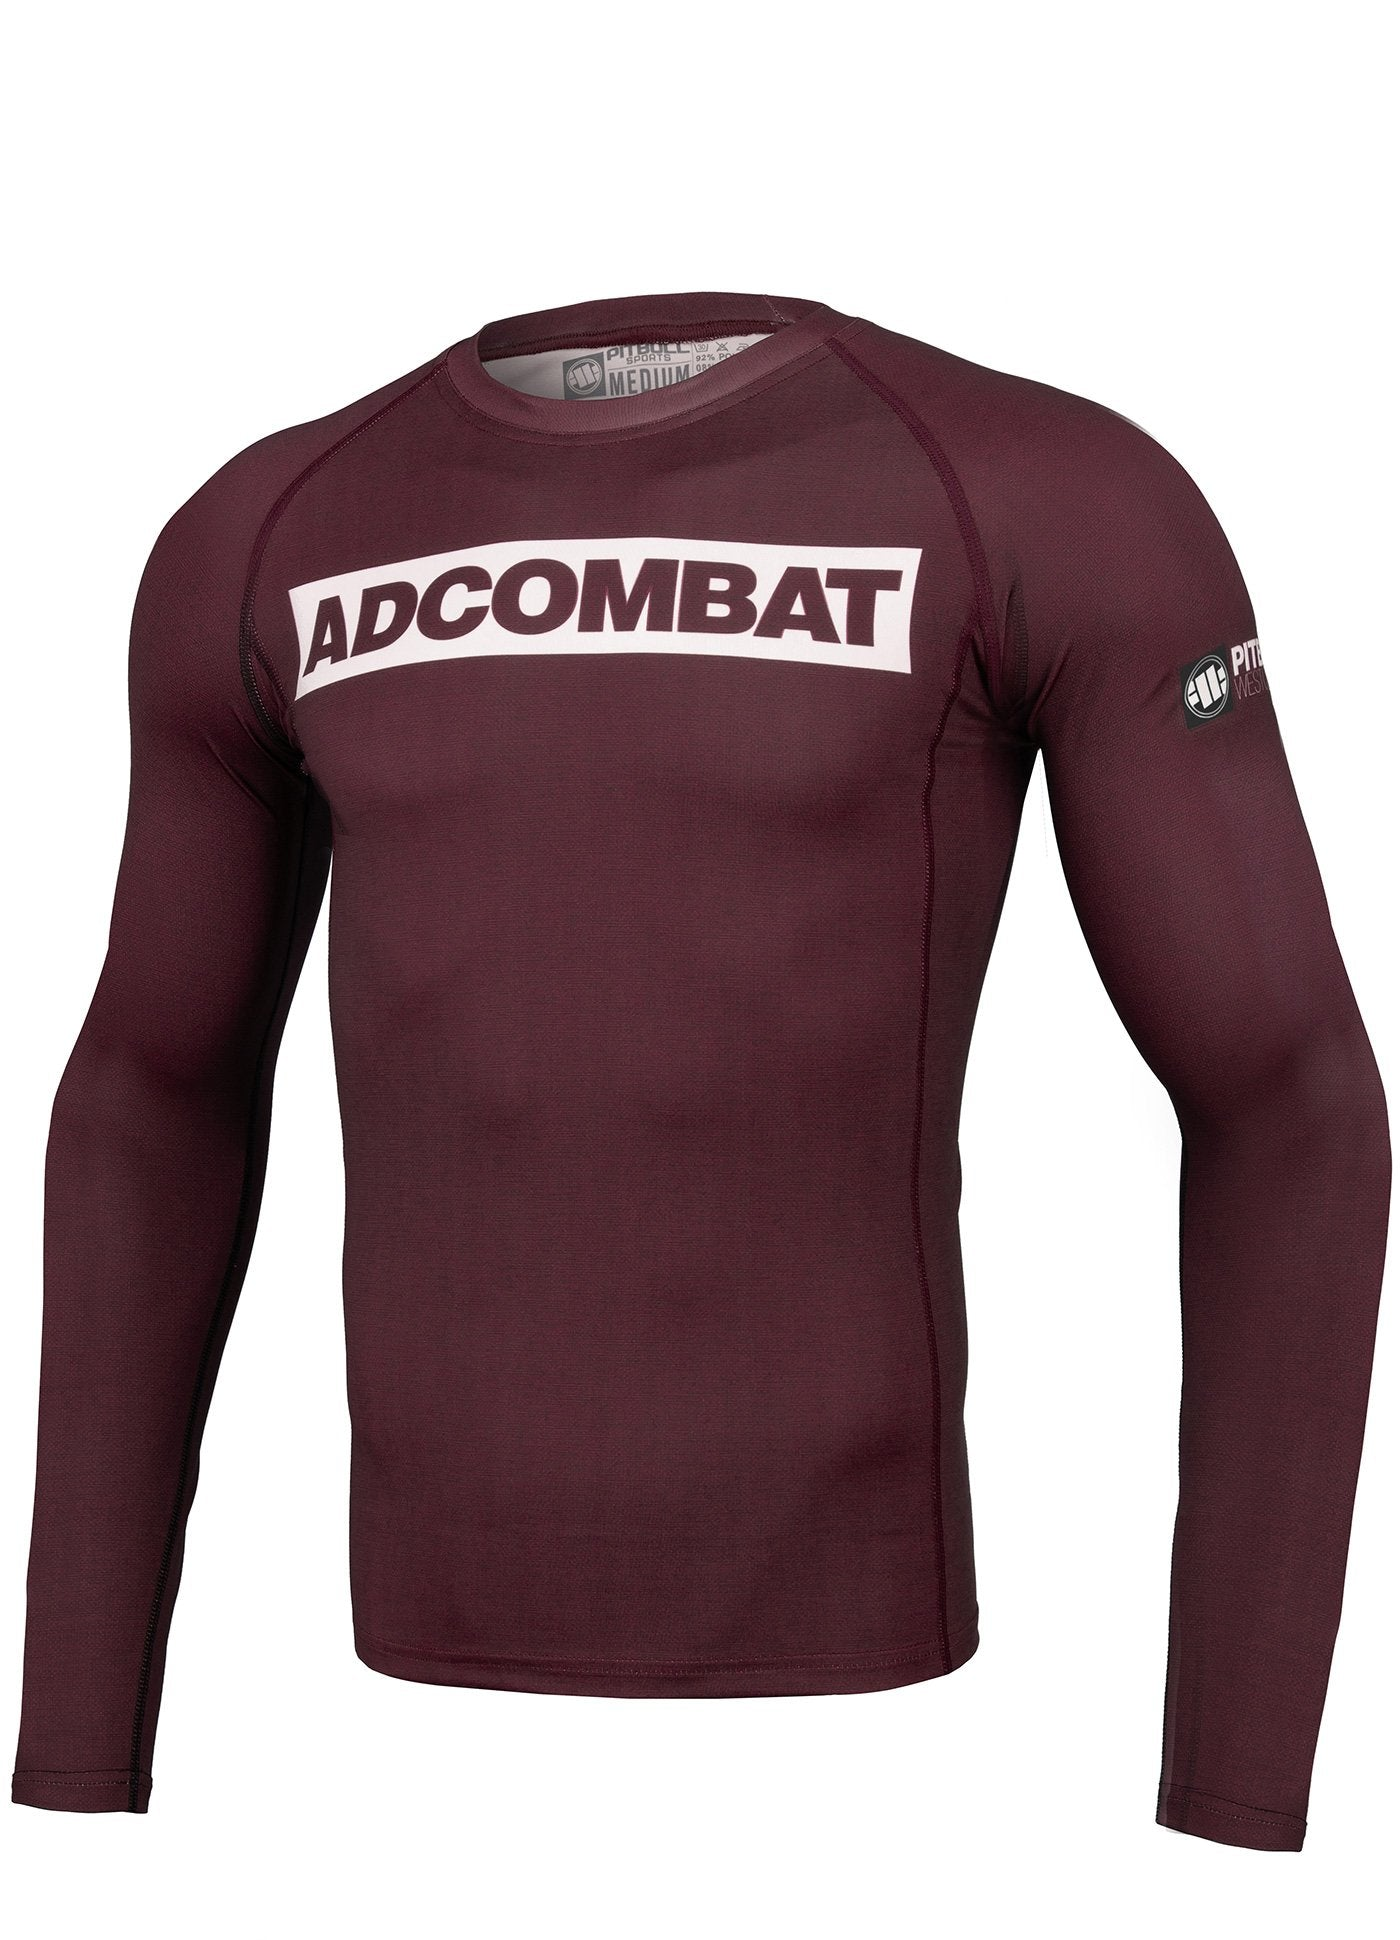 ADCC HILLTOP Burgundy Long Sleeve Rashguard - Pitbull West Coast U.S.A.